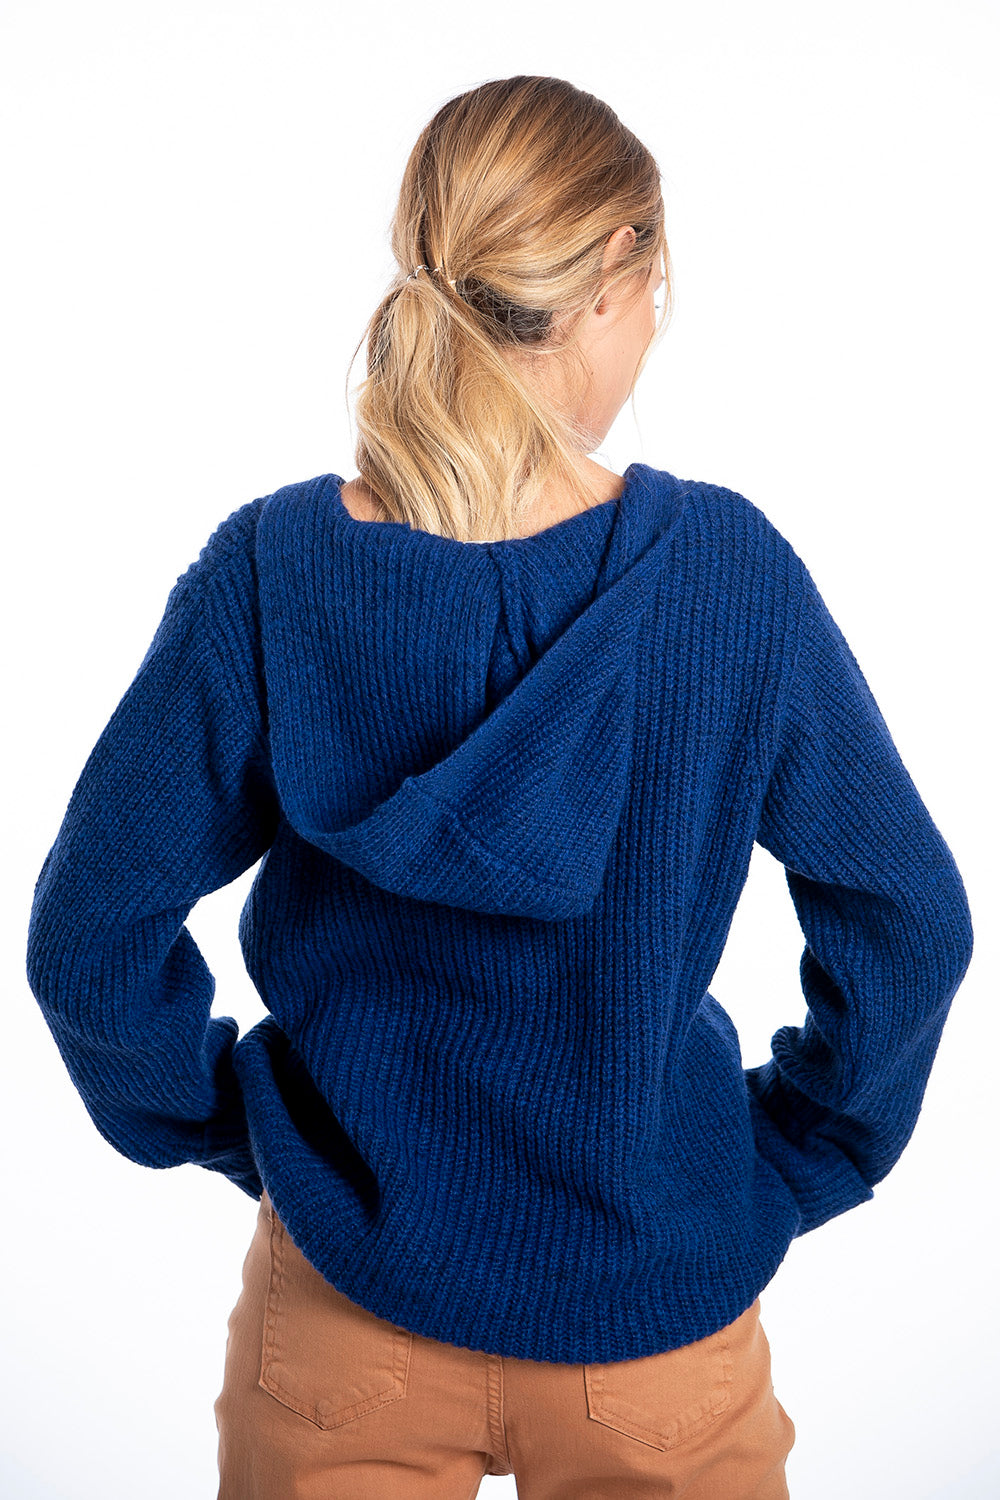 Infinity Knitwear hooded jumper